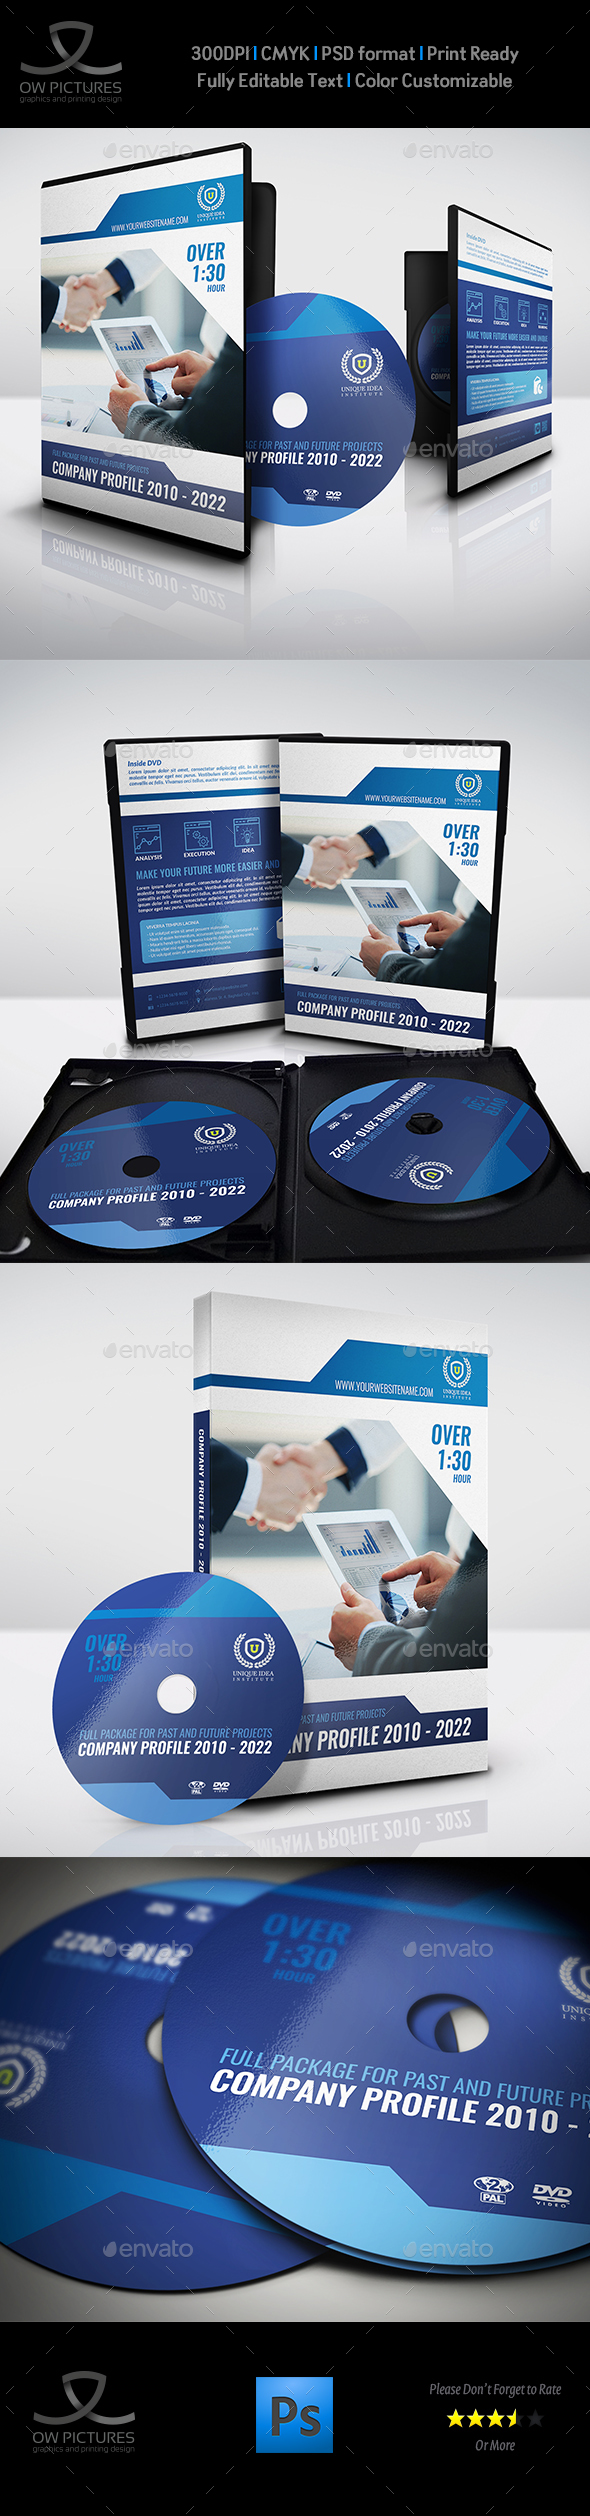 Company Profile DVD Cover and Label Template - CD & DVD Artwork Print Templates